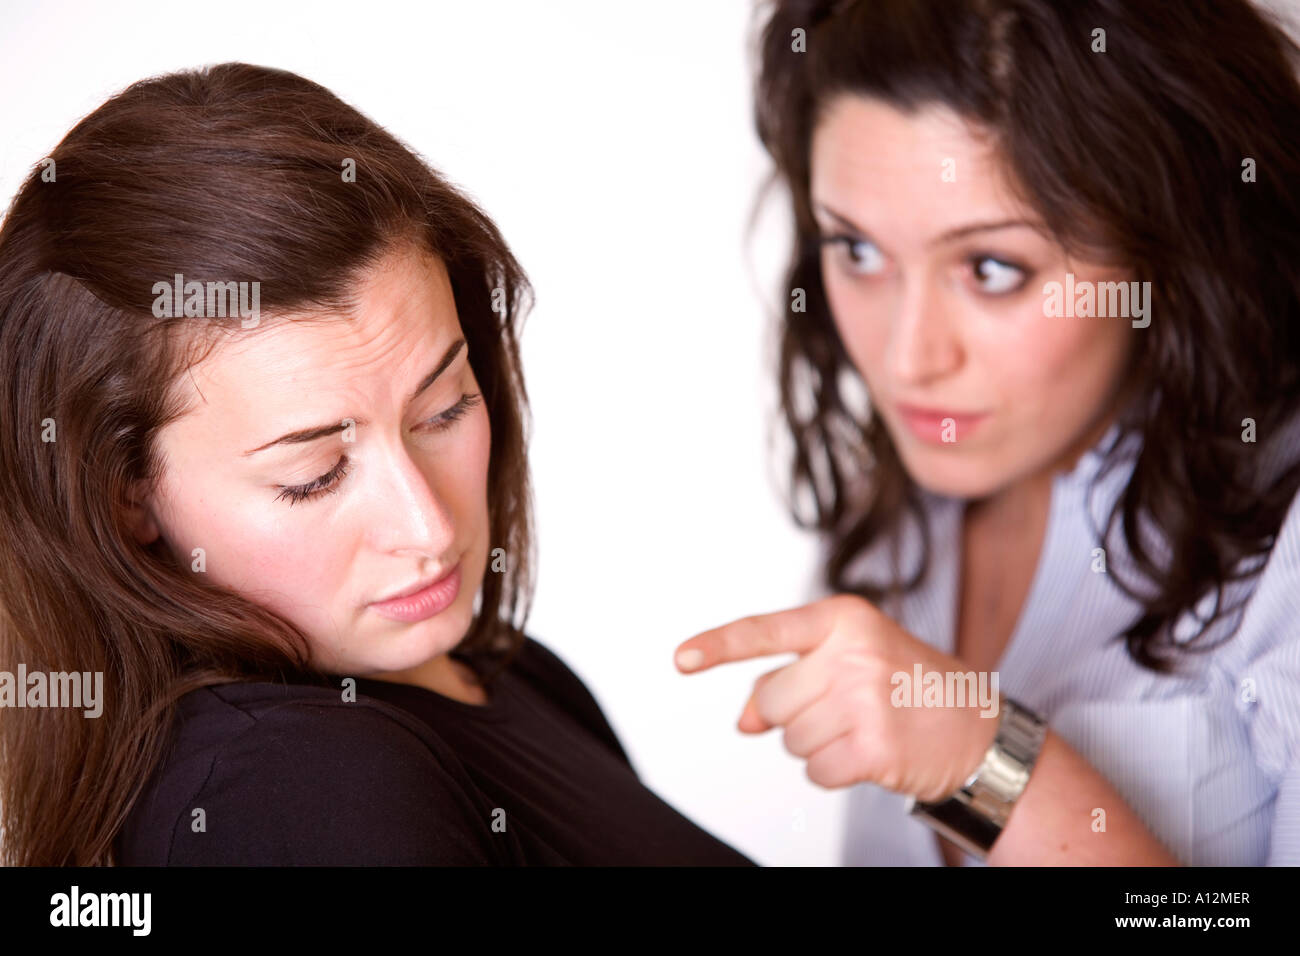 Two women having an argument - Stock Image